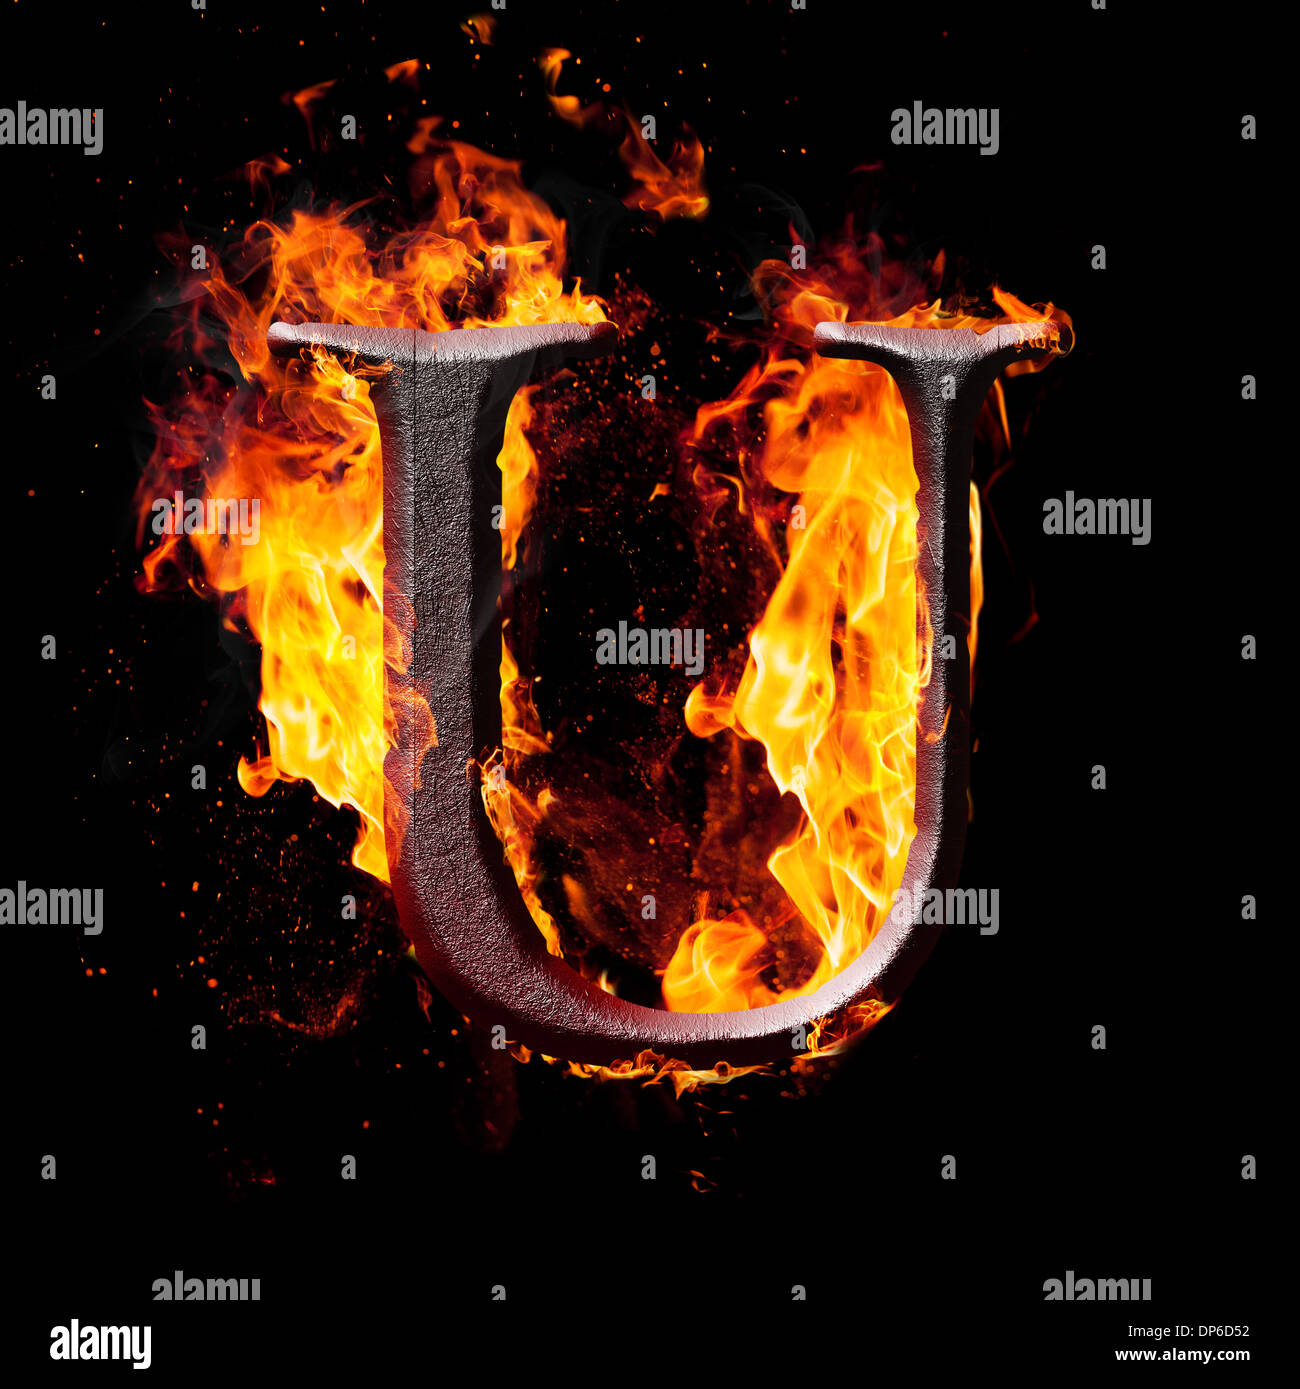 Decorative Fire Extinguisher Letters And Symbols In Fire U Stock Photo Royalty Free